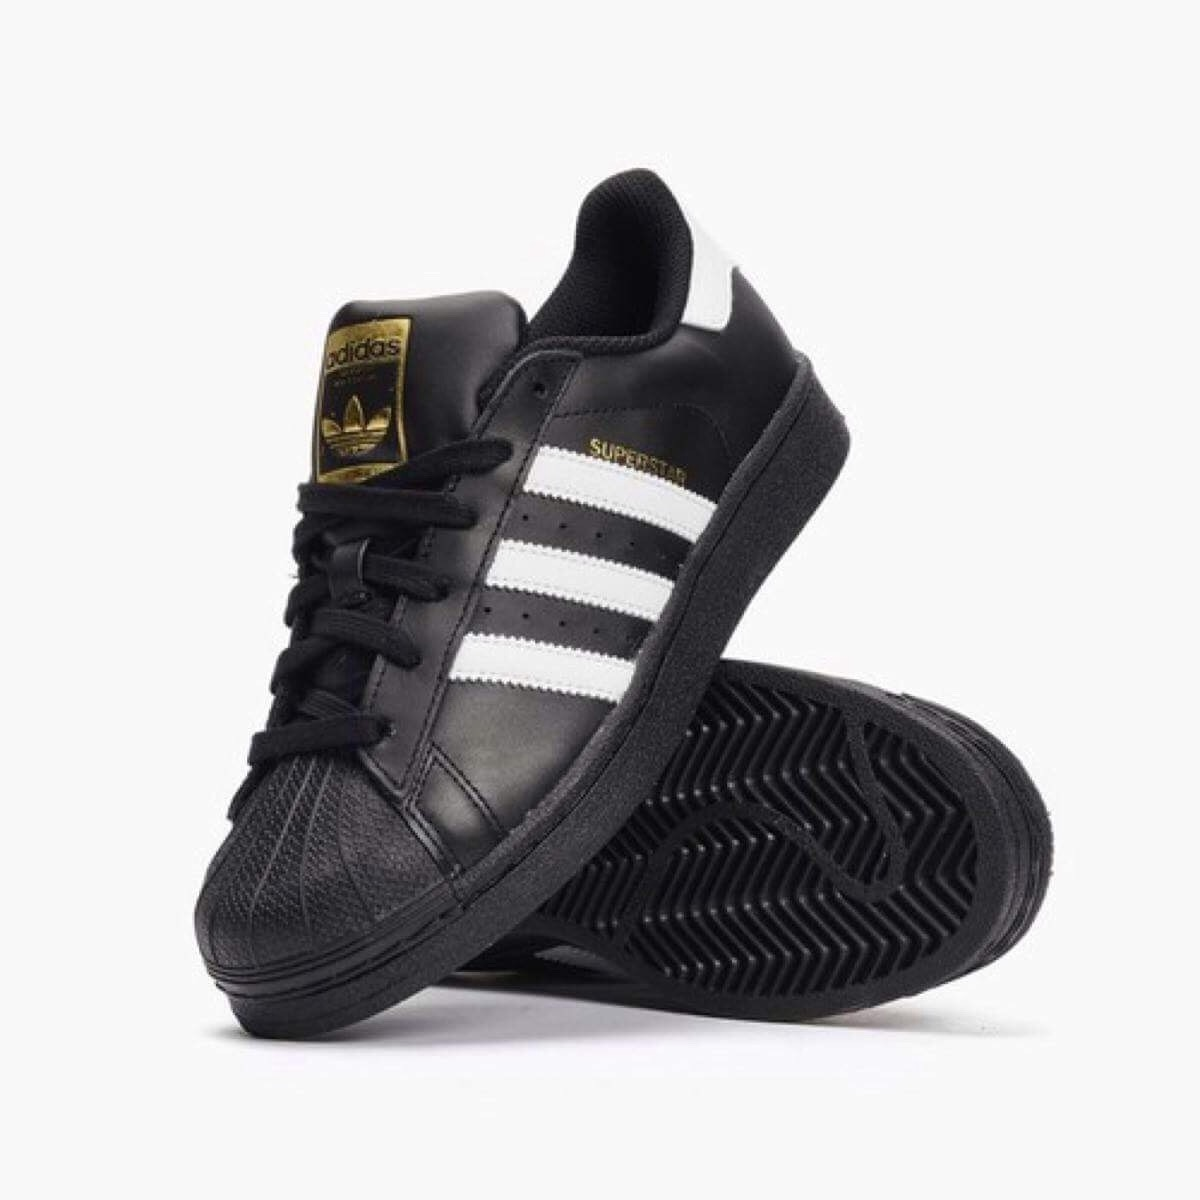 3c61785fe2 discount code for tenis adidas superstar negro original. cargando zoom.  8bf18 c3ae1